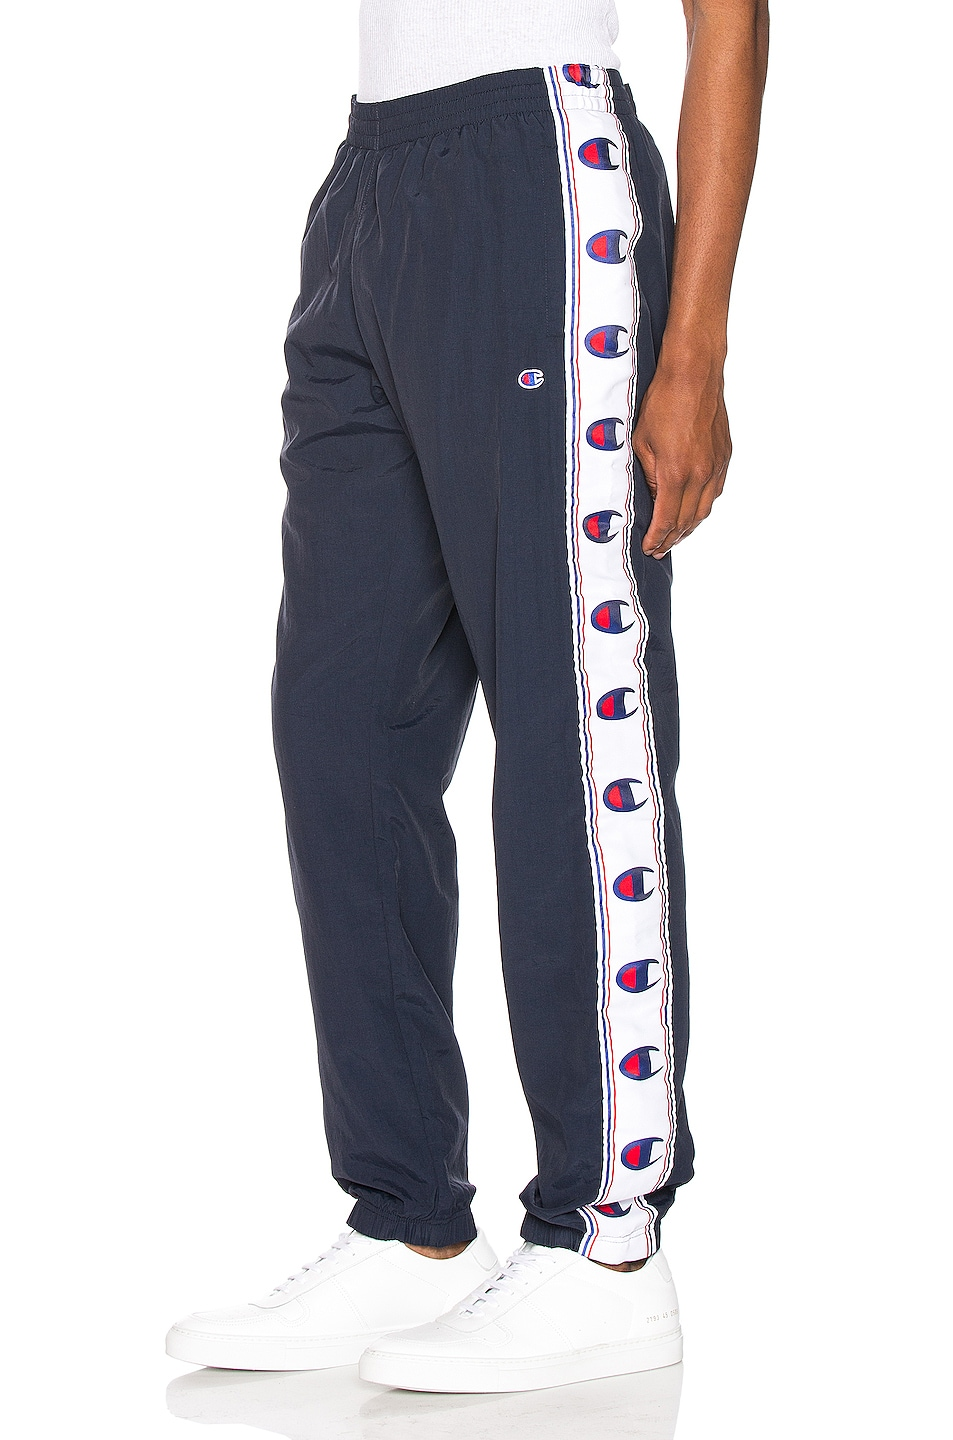 Image 1 of Champion Reverse Weave Elastic Cuff Pant in Navy